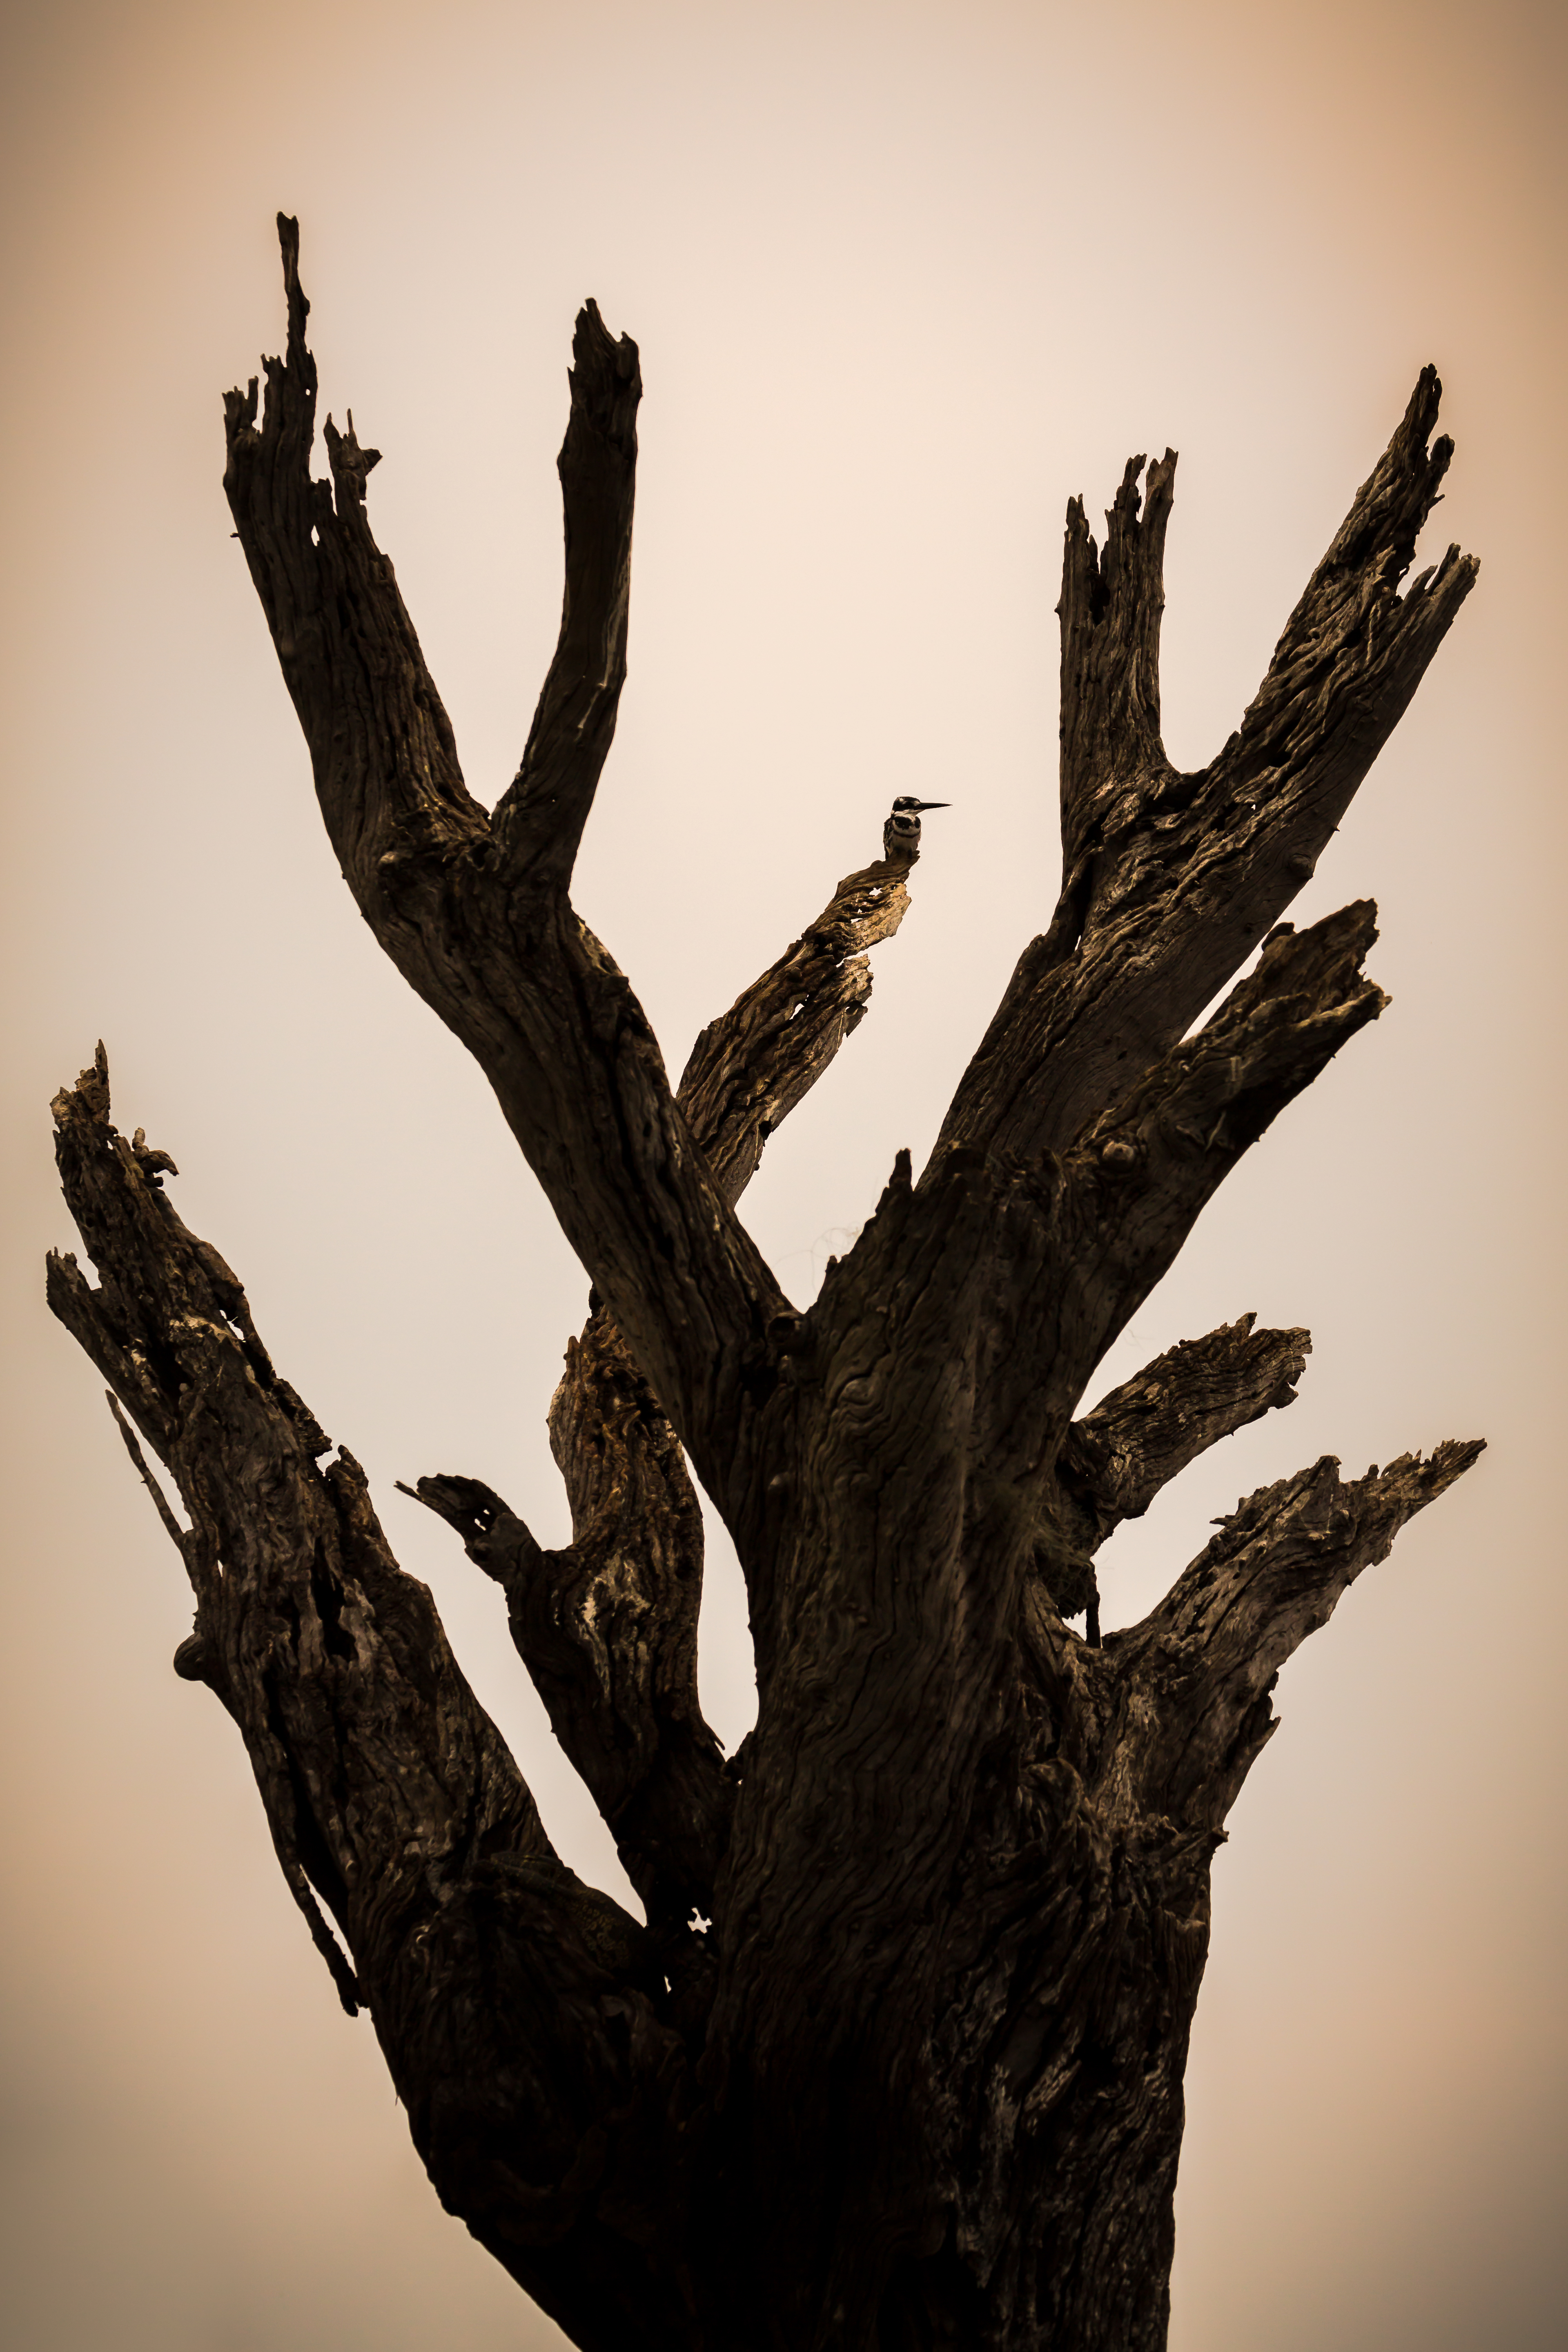 Kingfisher on Dead Tree, Chobe River, Botswana